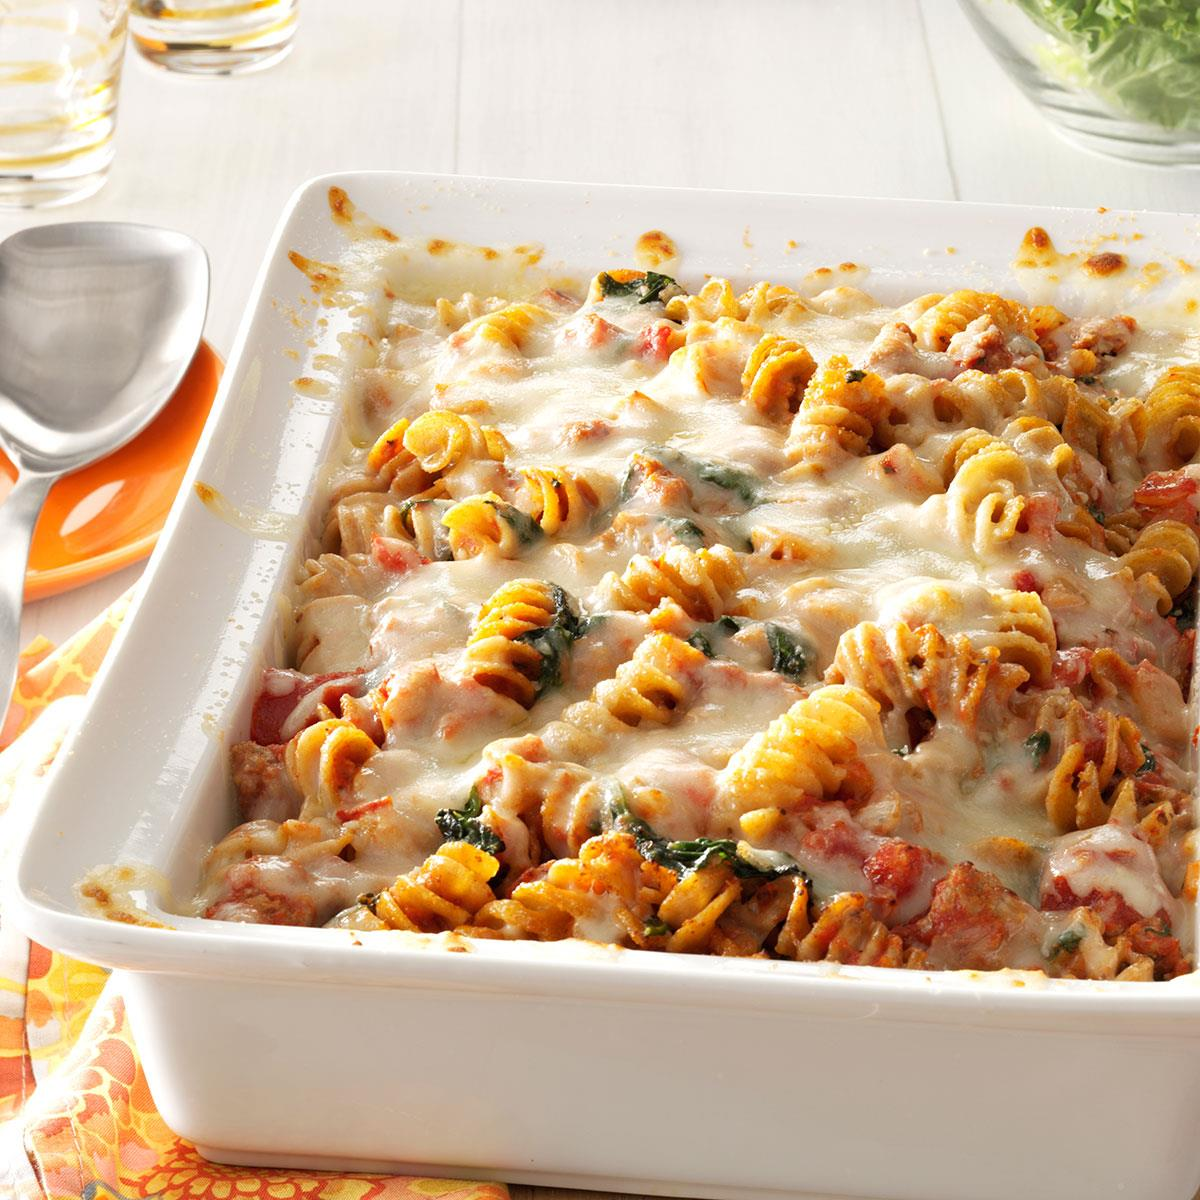 Pasta casserole. Recipe for pasta casserole with chicken and cheese in the oven 20